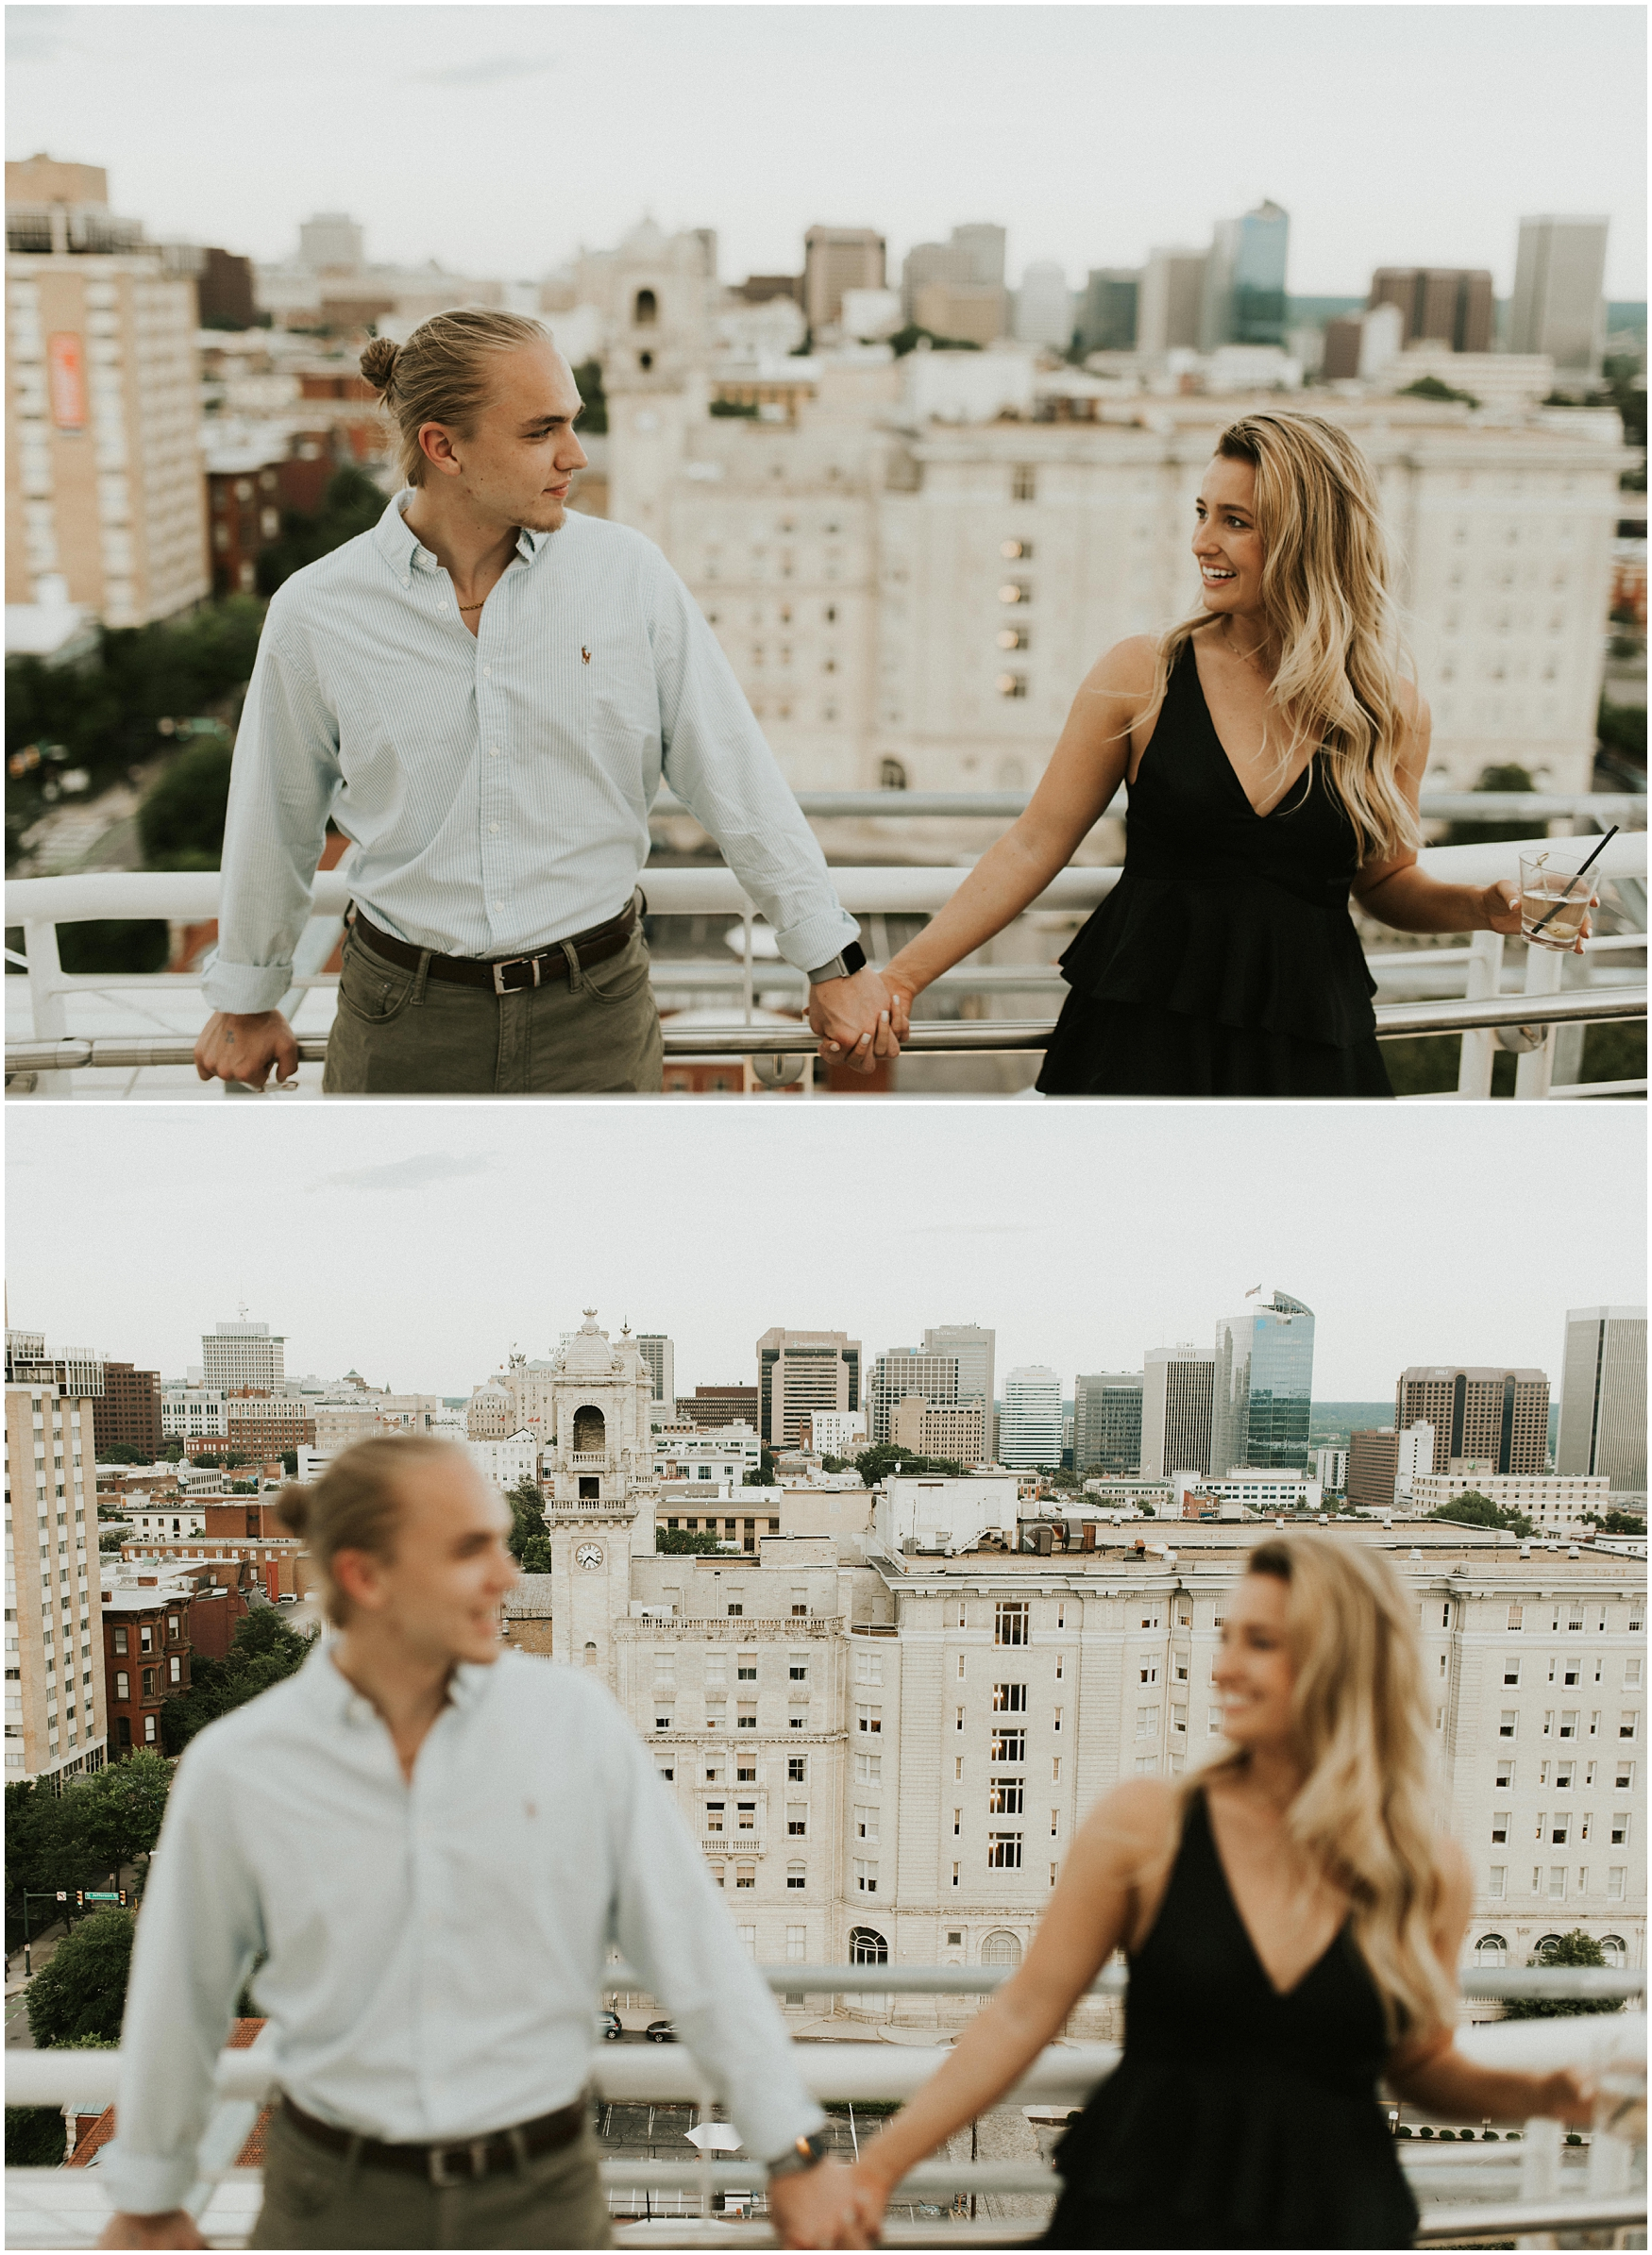 Hannah_Baldwin_Photography_RoofTop_Richmond_Virginia_Couples_Session_The_Graduate_RVA_0249.jpg